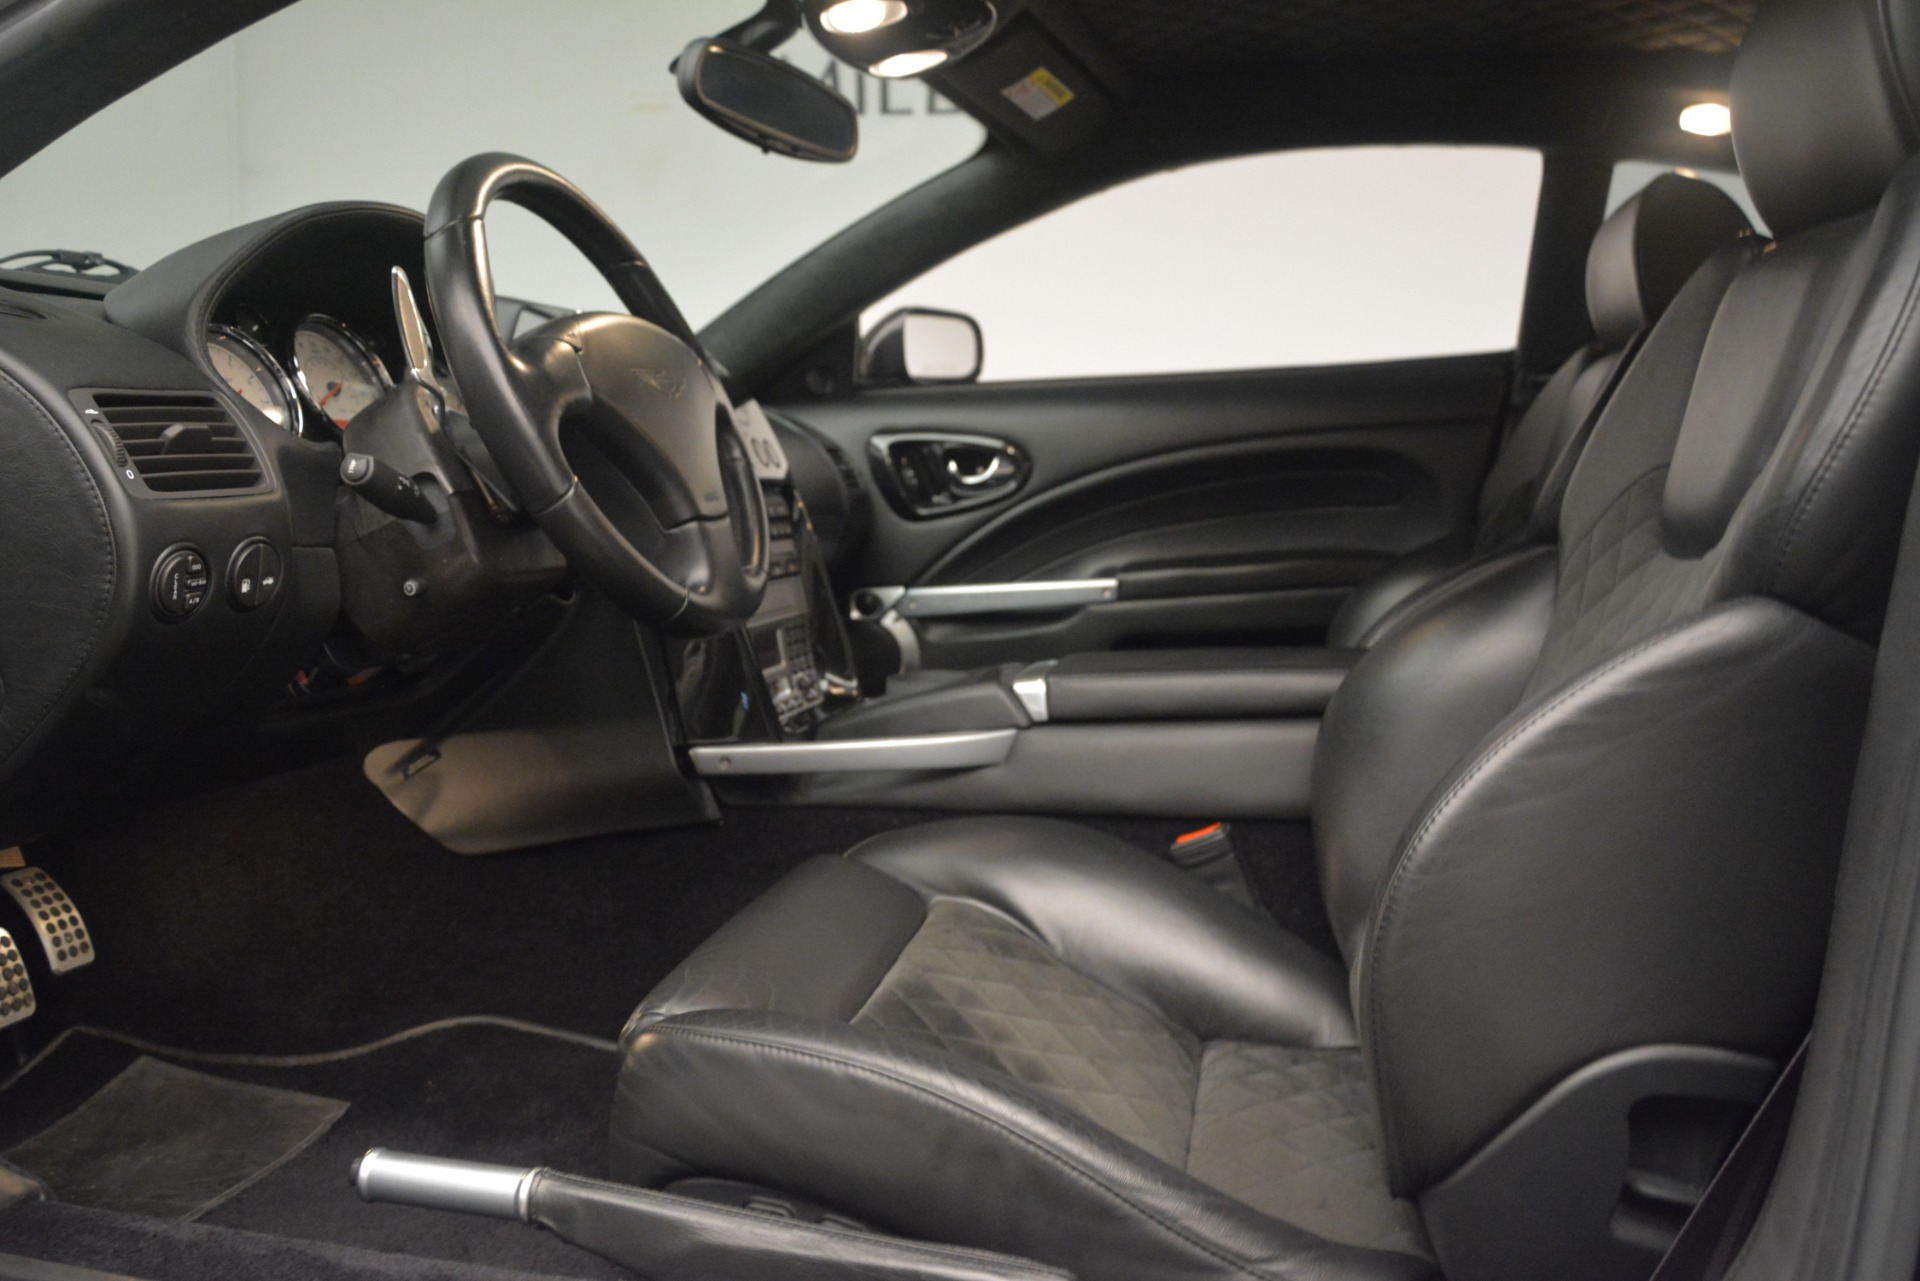 Used 2004 Aston Martin V12 Vanquish  For Sale In Westport, CT 3160_p12